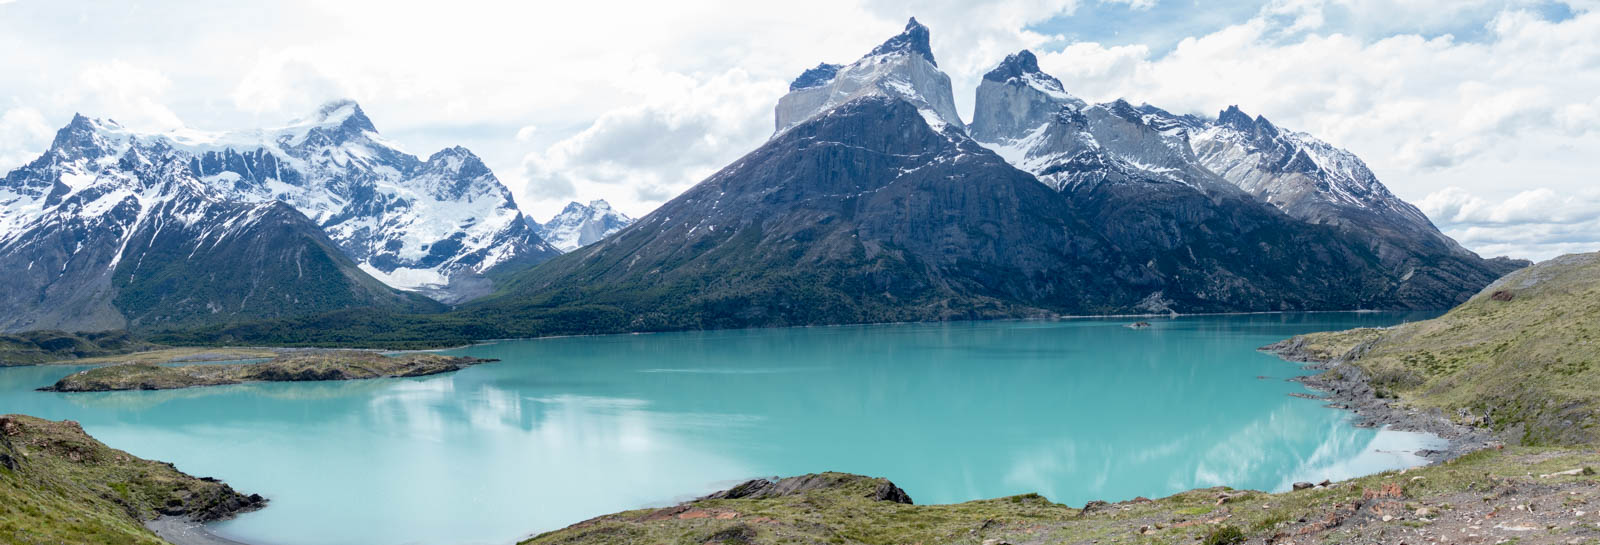 panorama view of cuernos del paine author yin tom